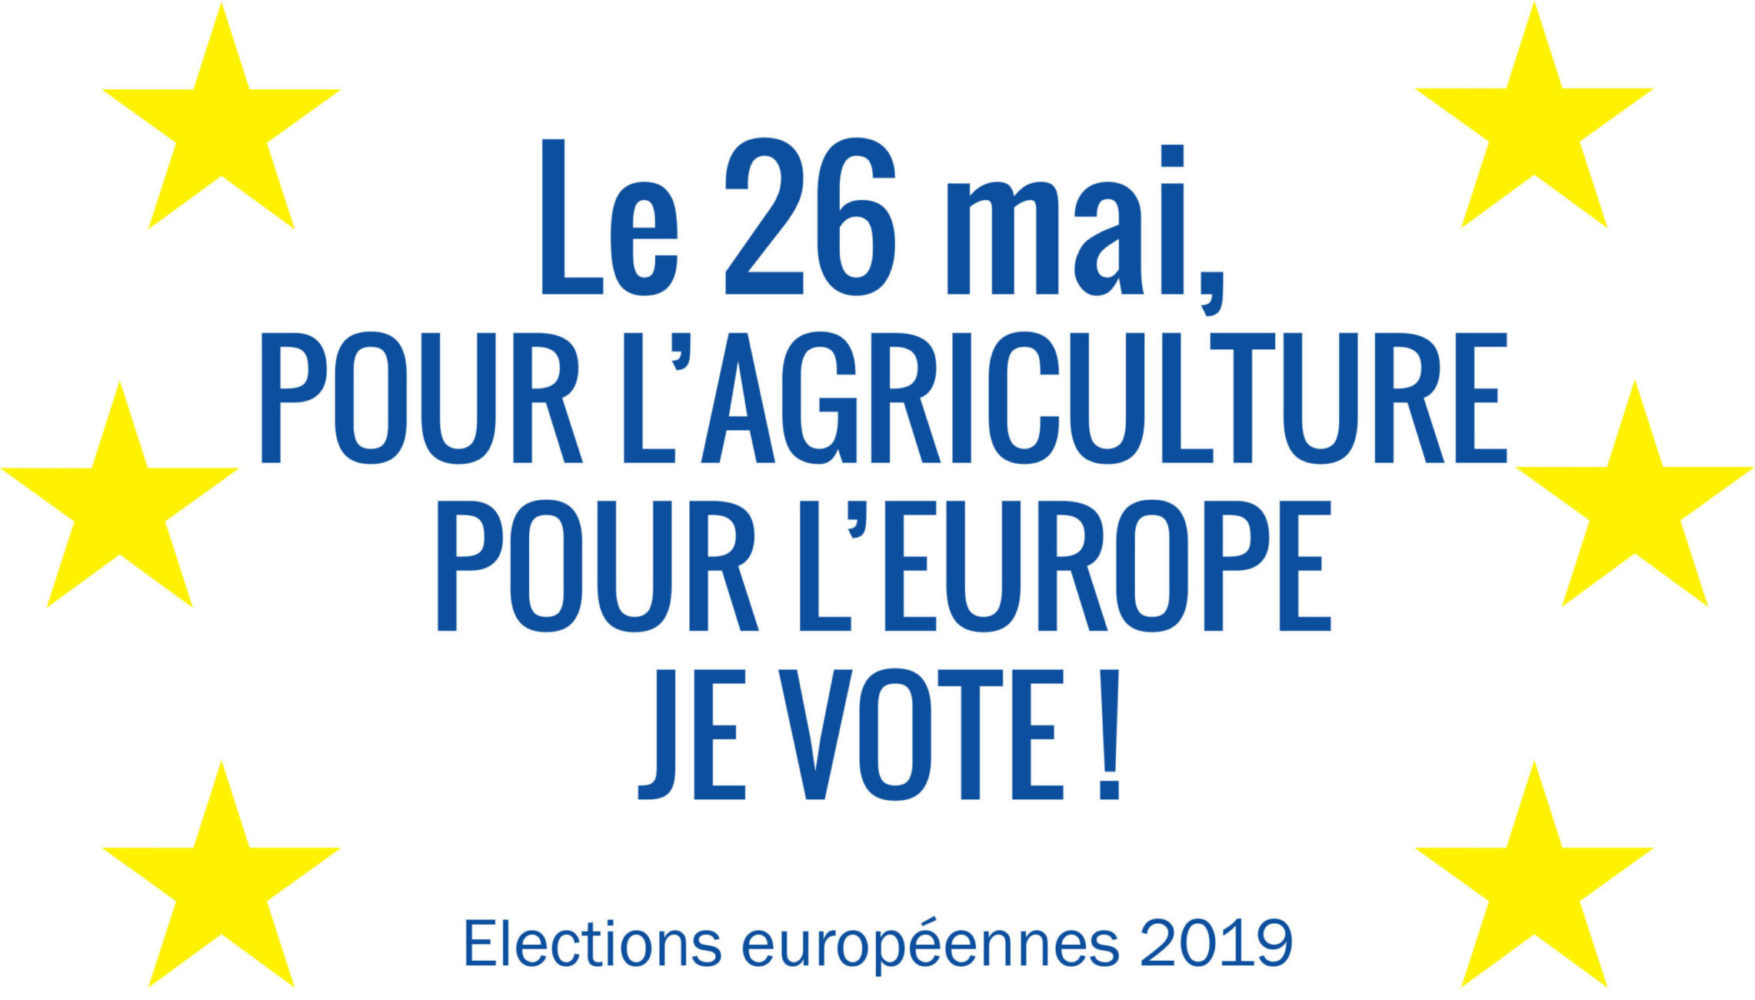 Visuel vote europe 2019_3